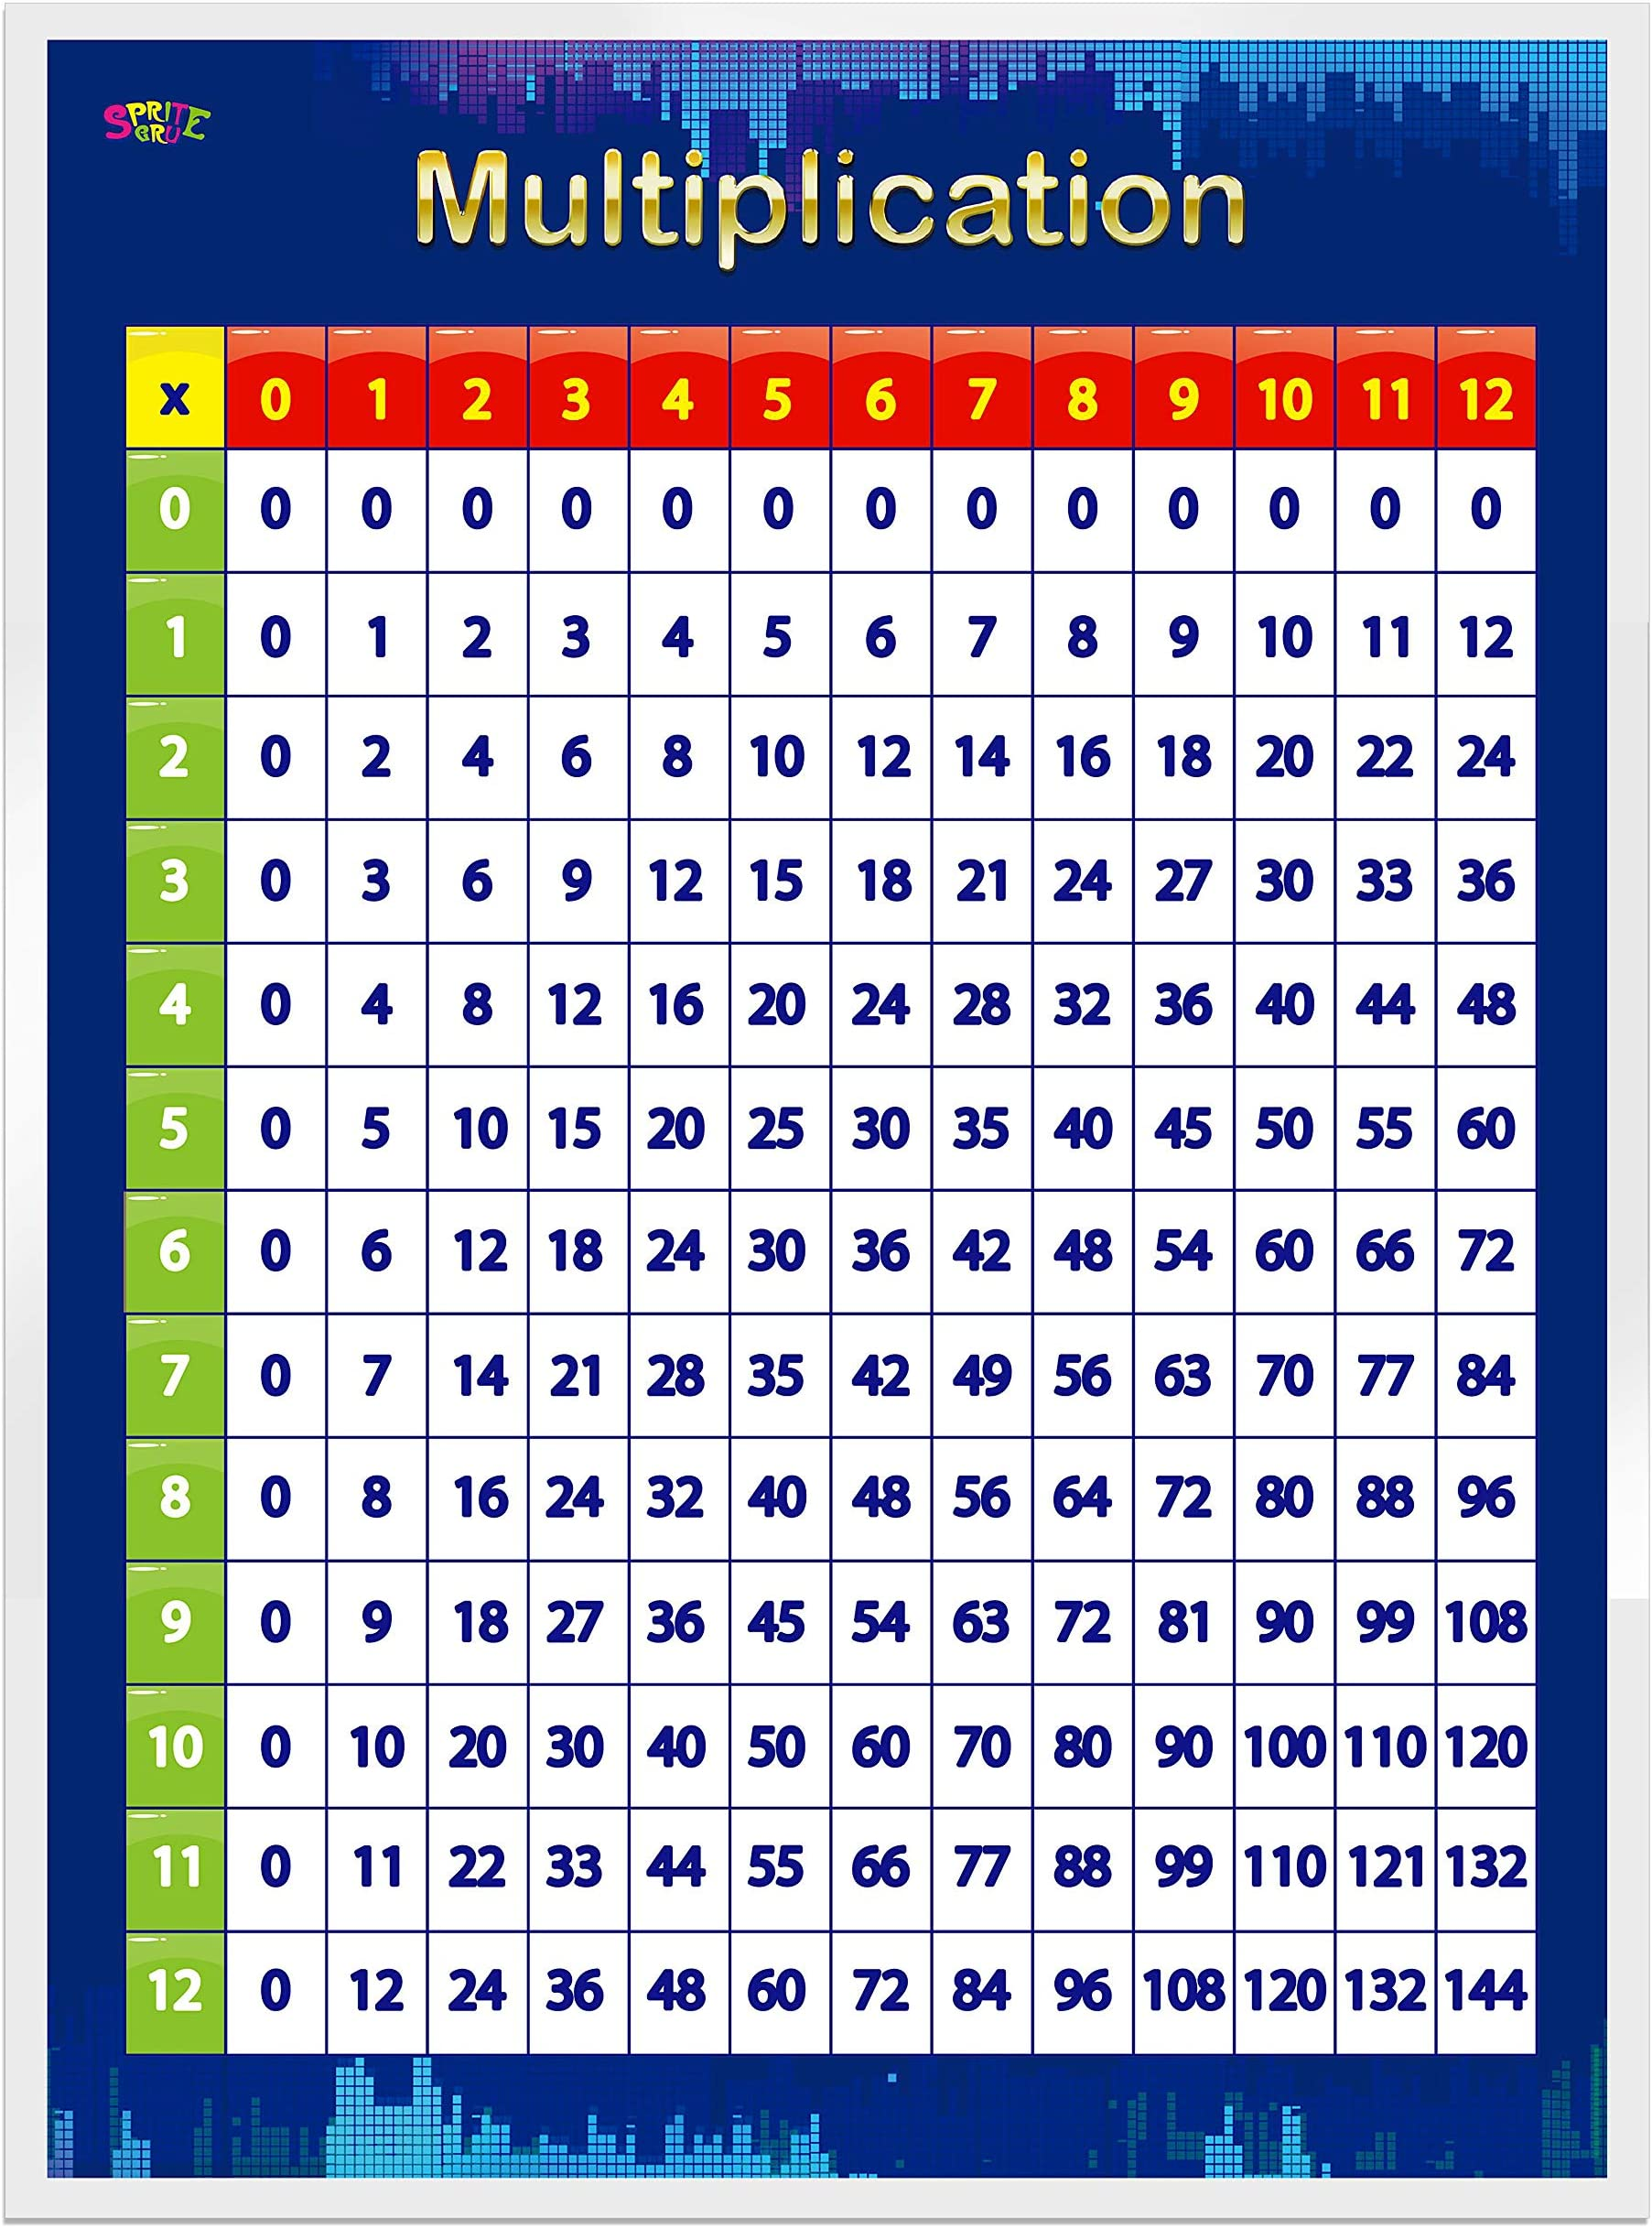 Schule Multiplication Table From 1 to 12 Poster Plakat #125741 91x61cm